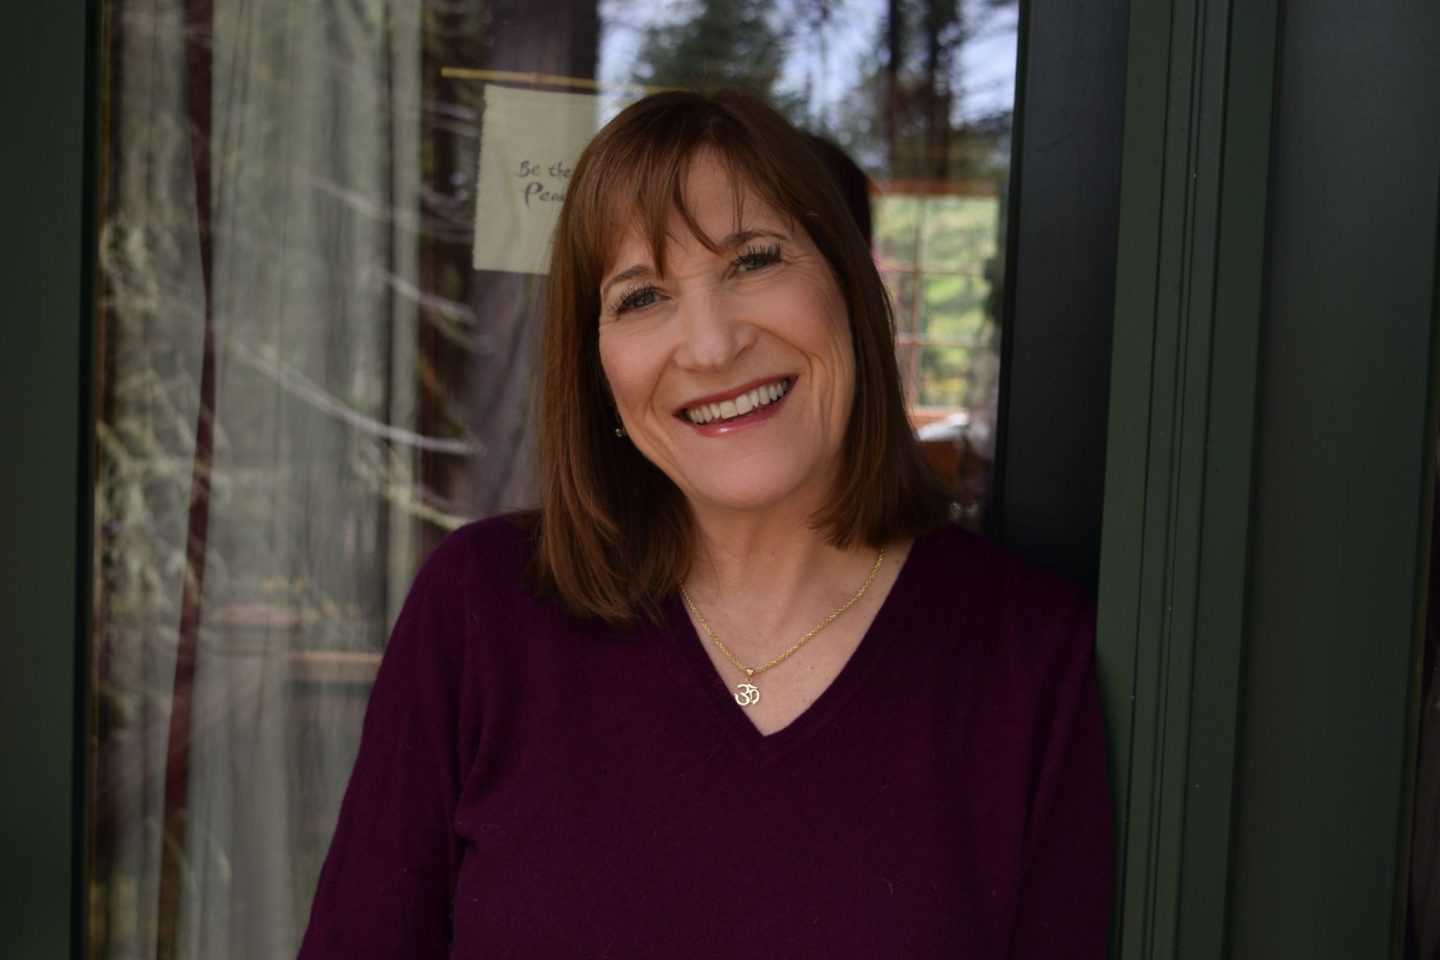 An image of Wendy Stgar, CEO of Good Clean Love, smiling